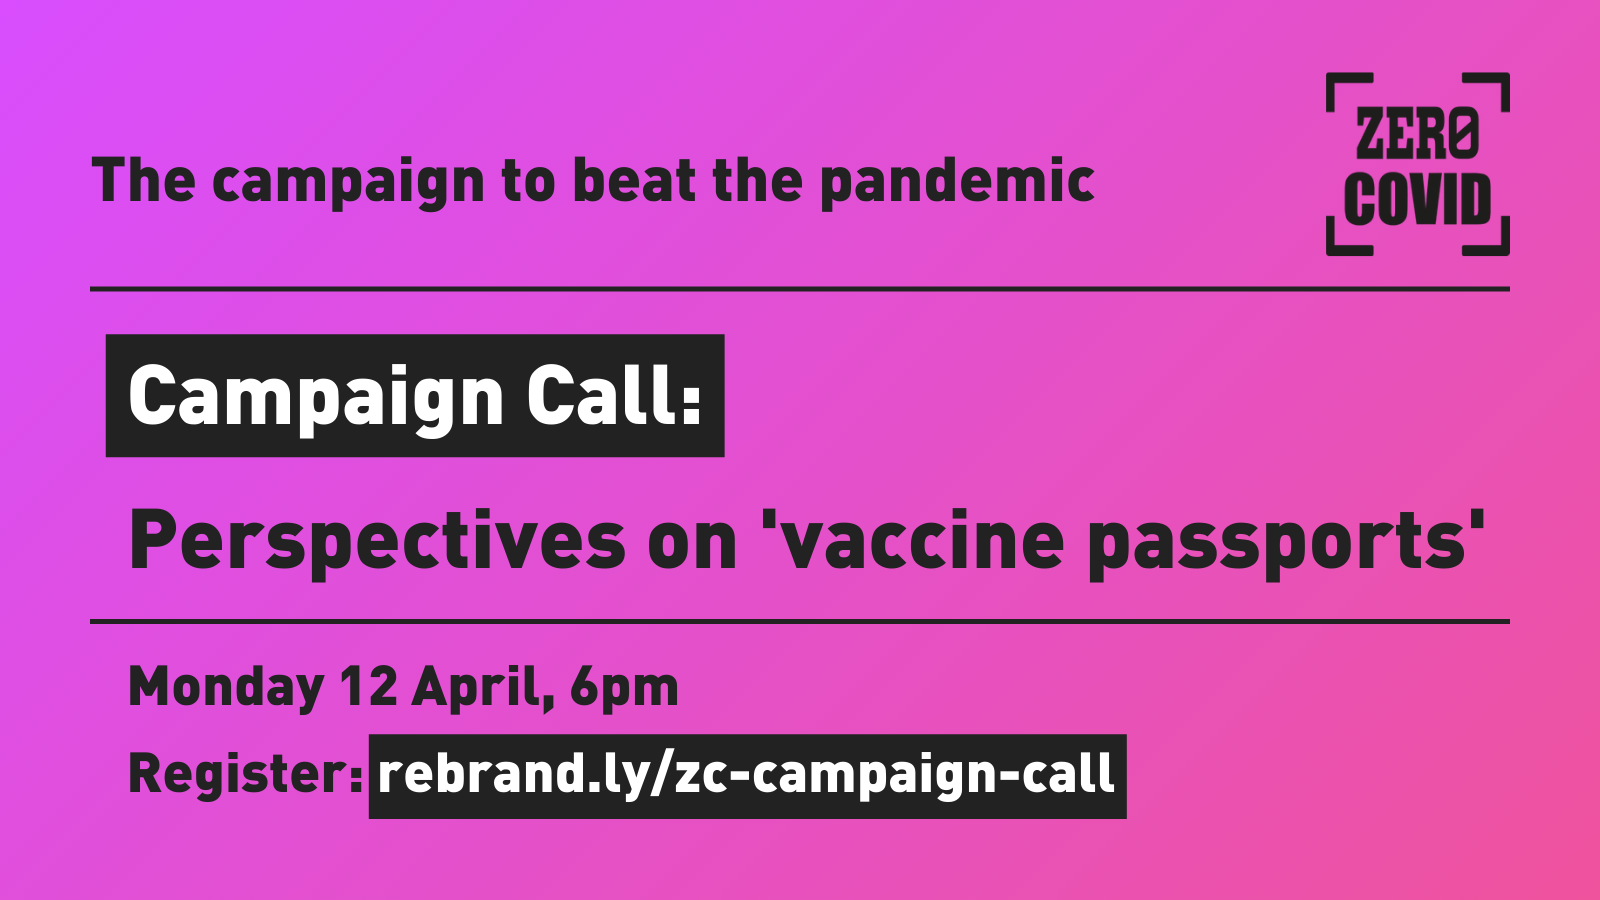 An image advertising the Zero Covid campaign call to discuss 'vaccine passports' on 12 April at 6pm.